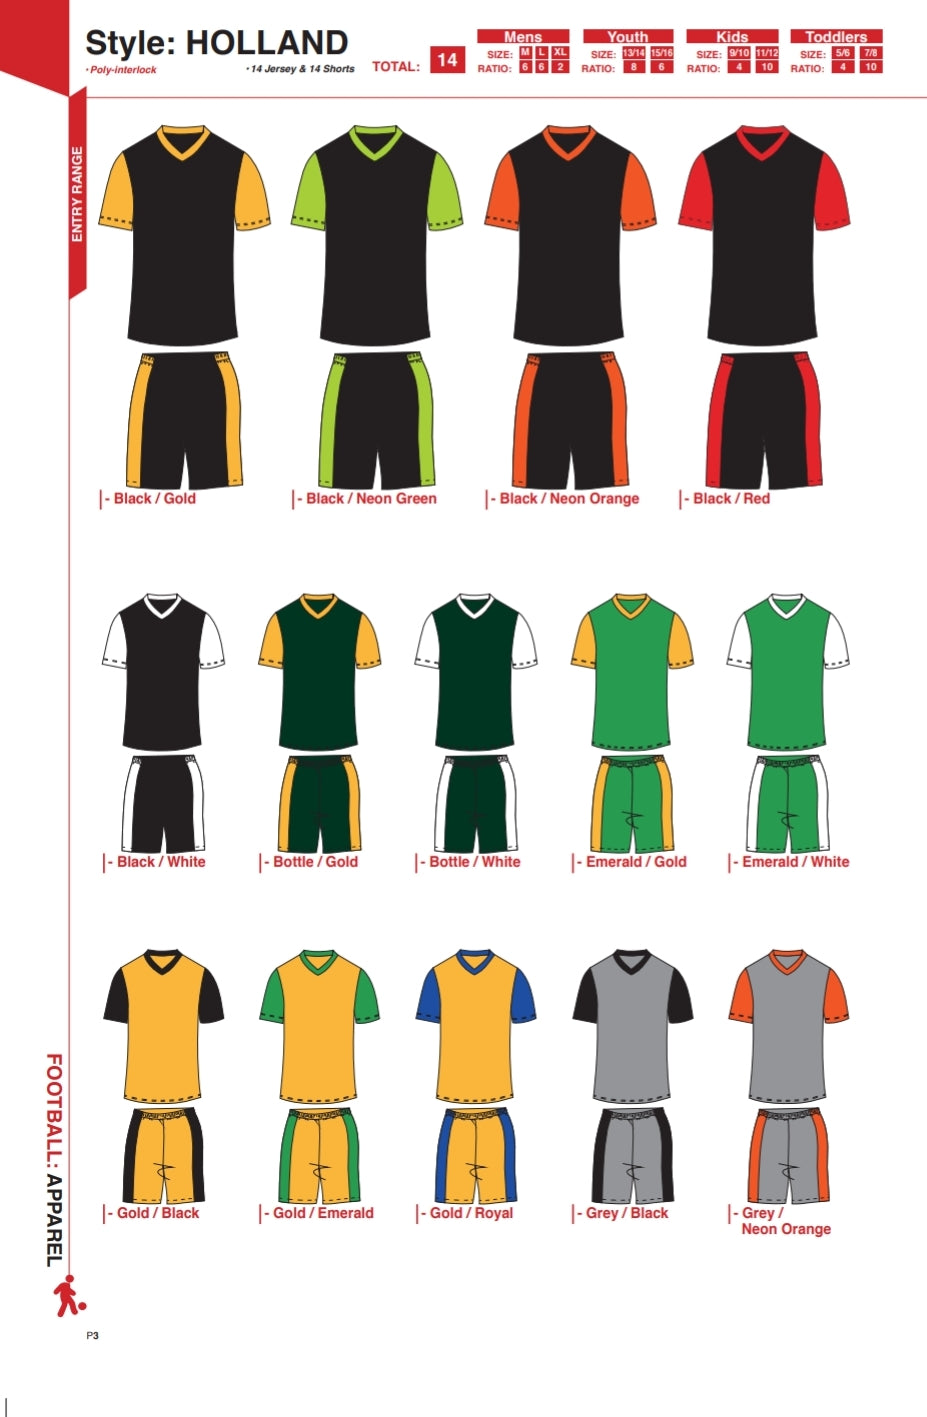 Soccer Kit Combo Basic Set - Holland Style Colour Chart A